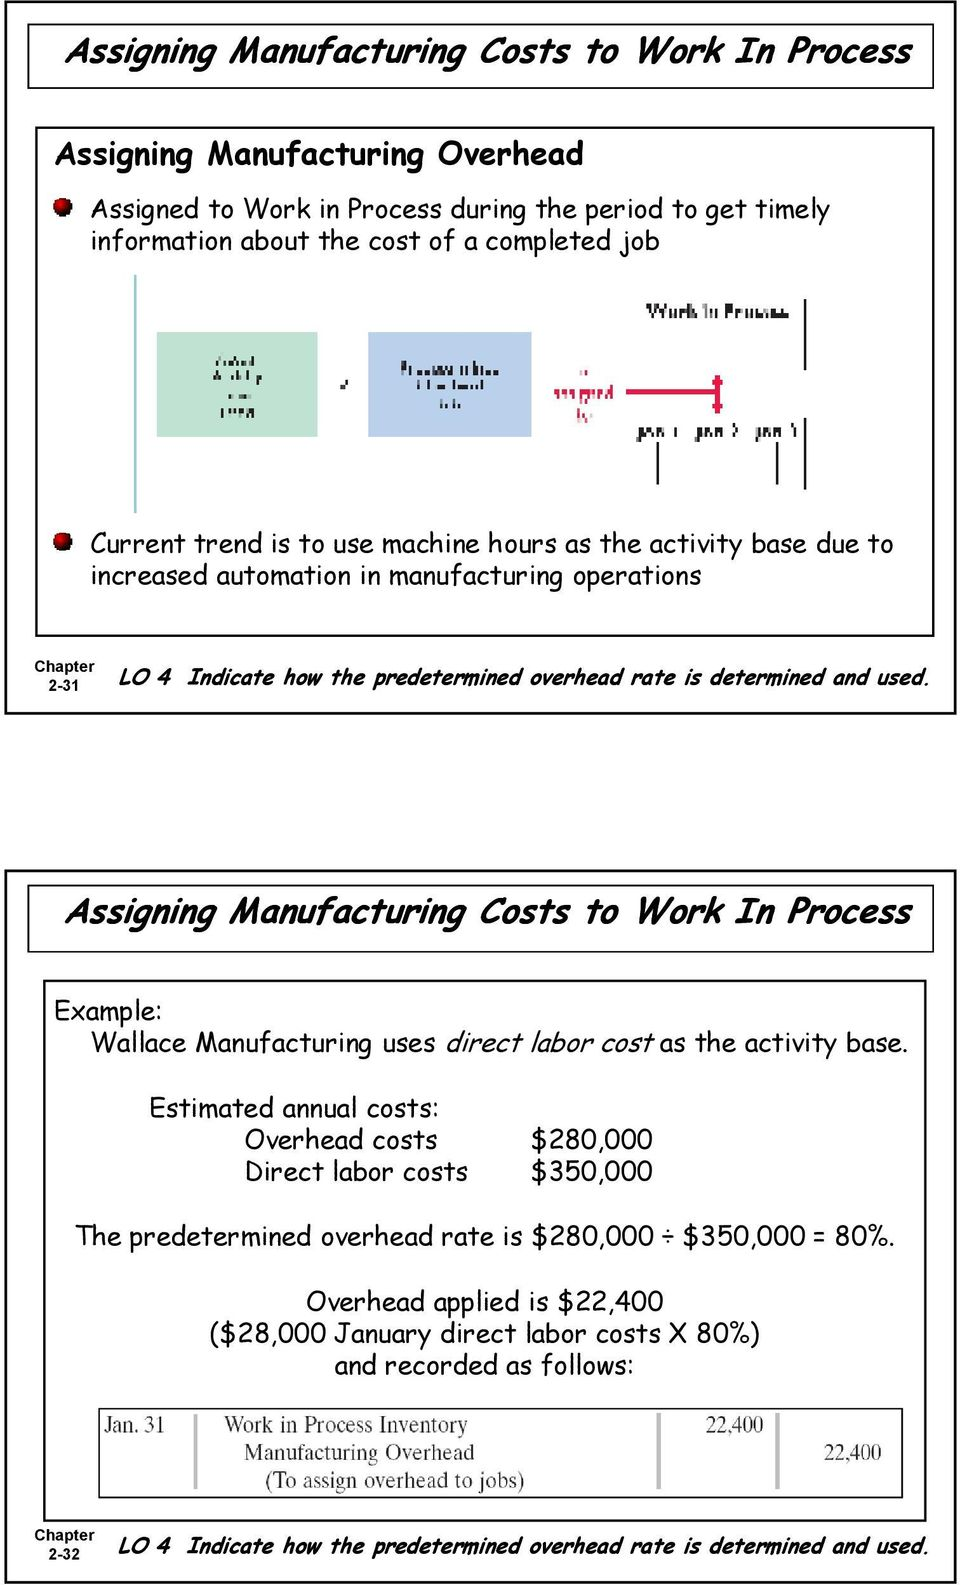 Assigning Manufacturing Costs to Work In Process Example: Wallace Manufacturing uses direct labor cost as the activity base.